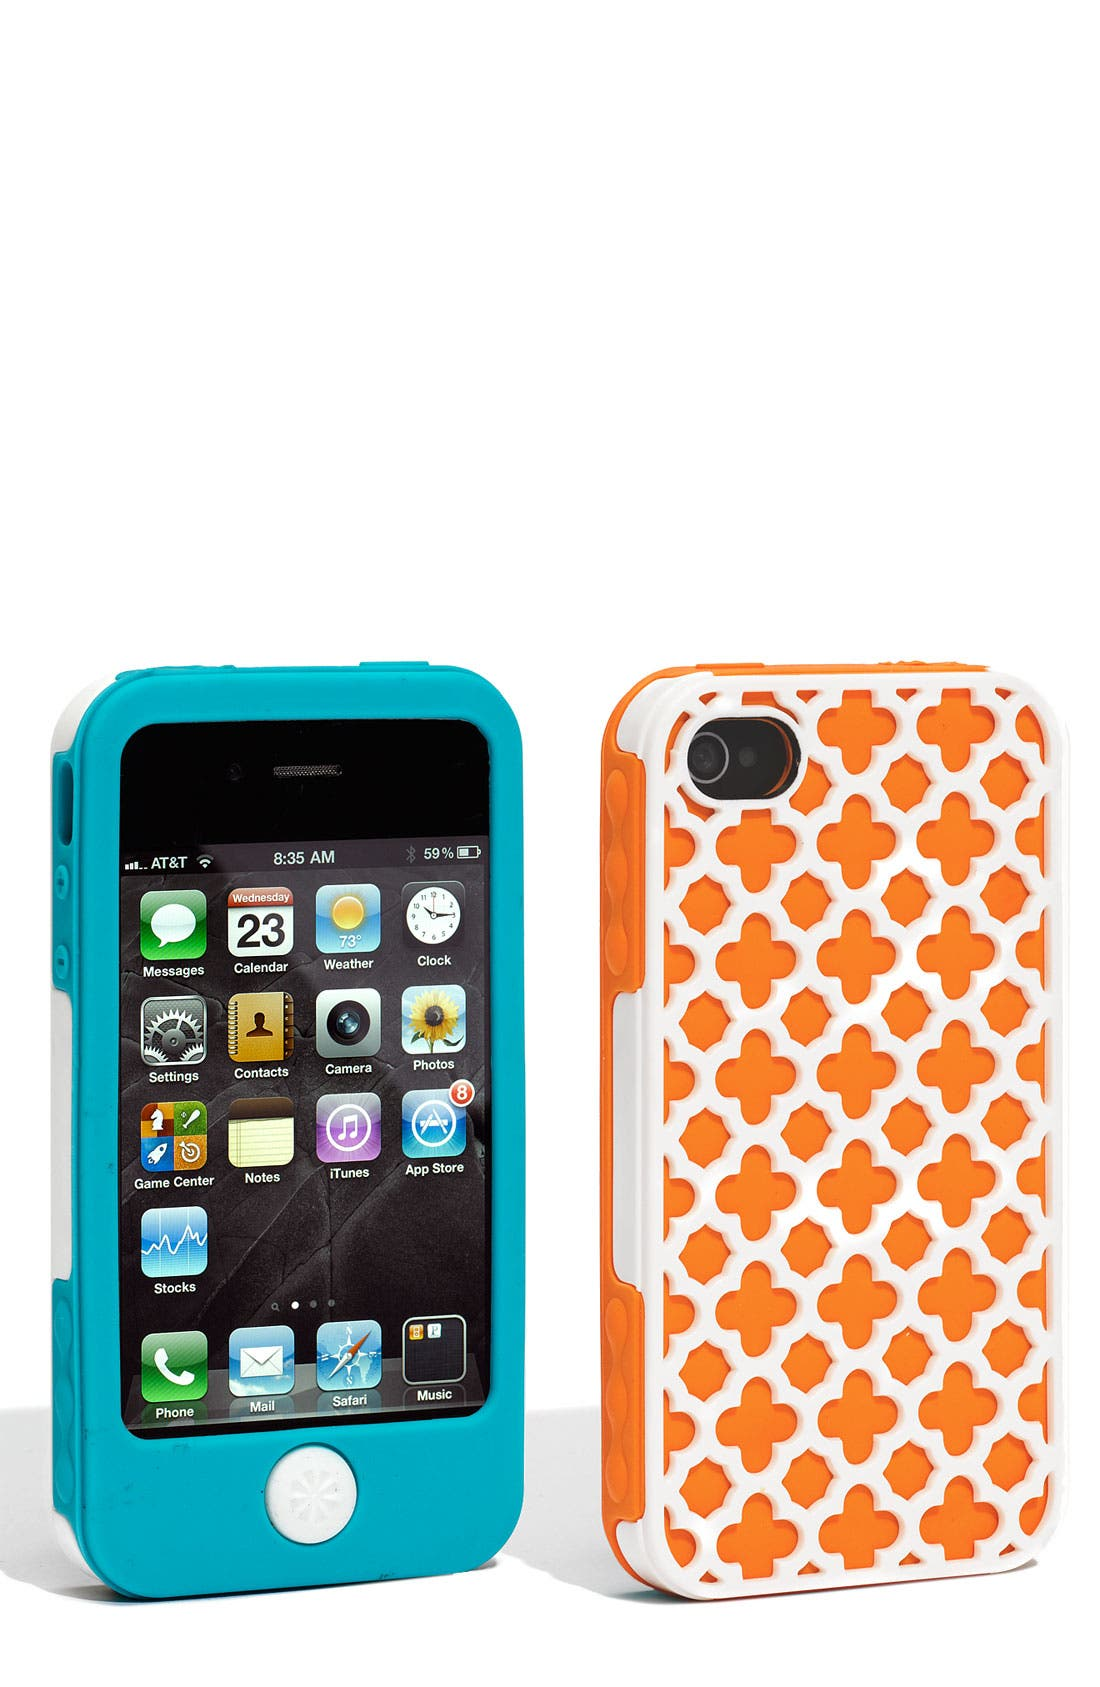 Alternate Image 1 Selected - Tech Candy 'Barcelona' iPhone 4 Silicone Case (3-Piece Set)